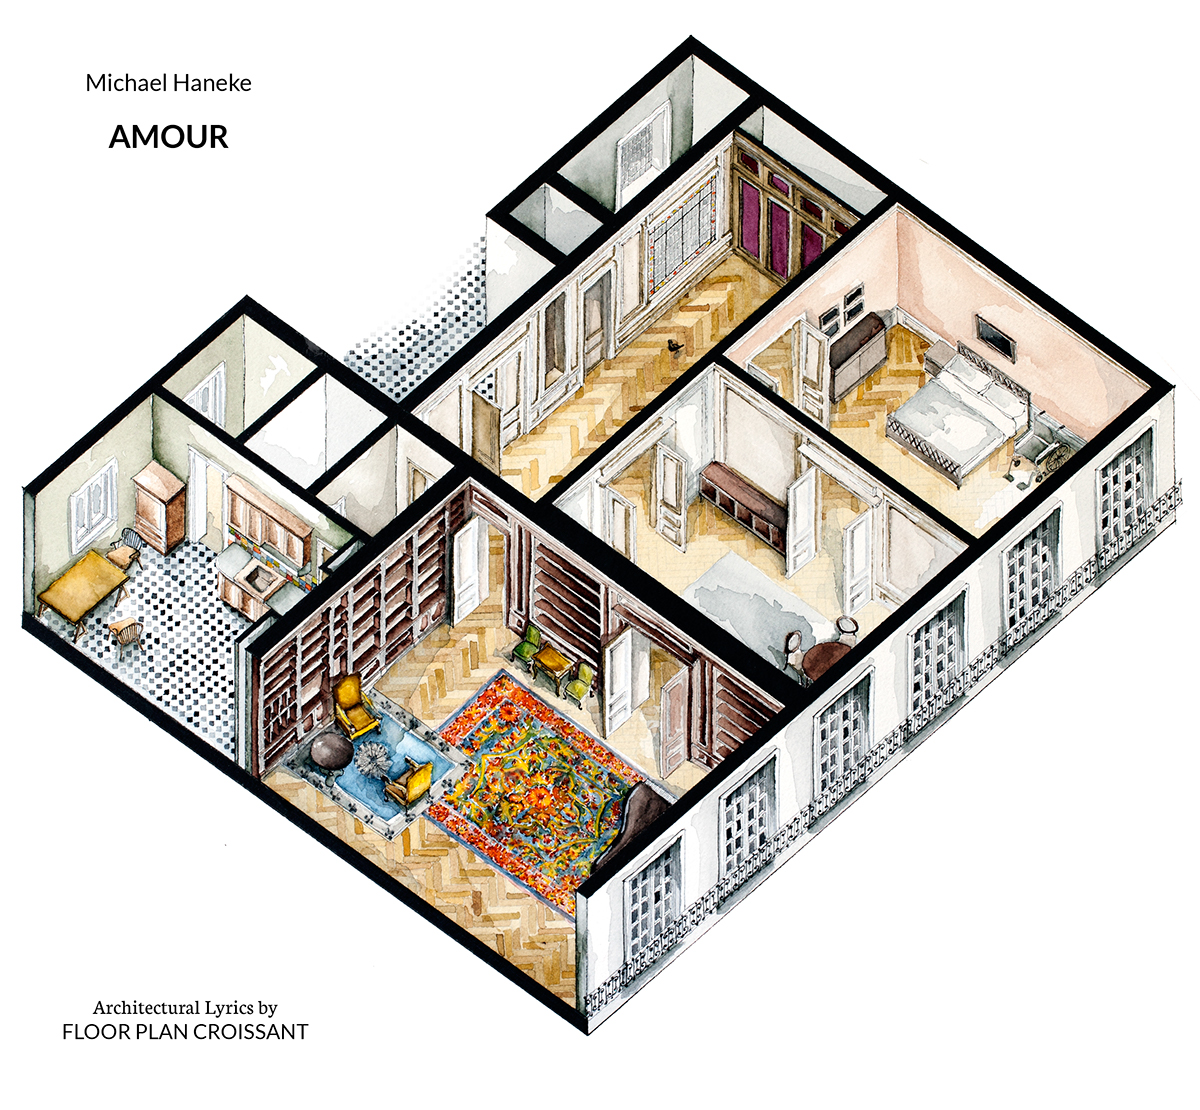 Drawn amour wind Floor Watercolor of isometric https://